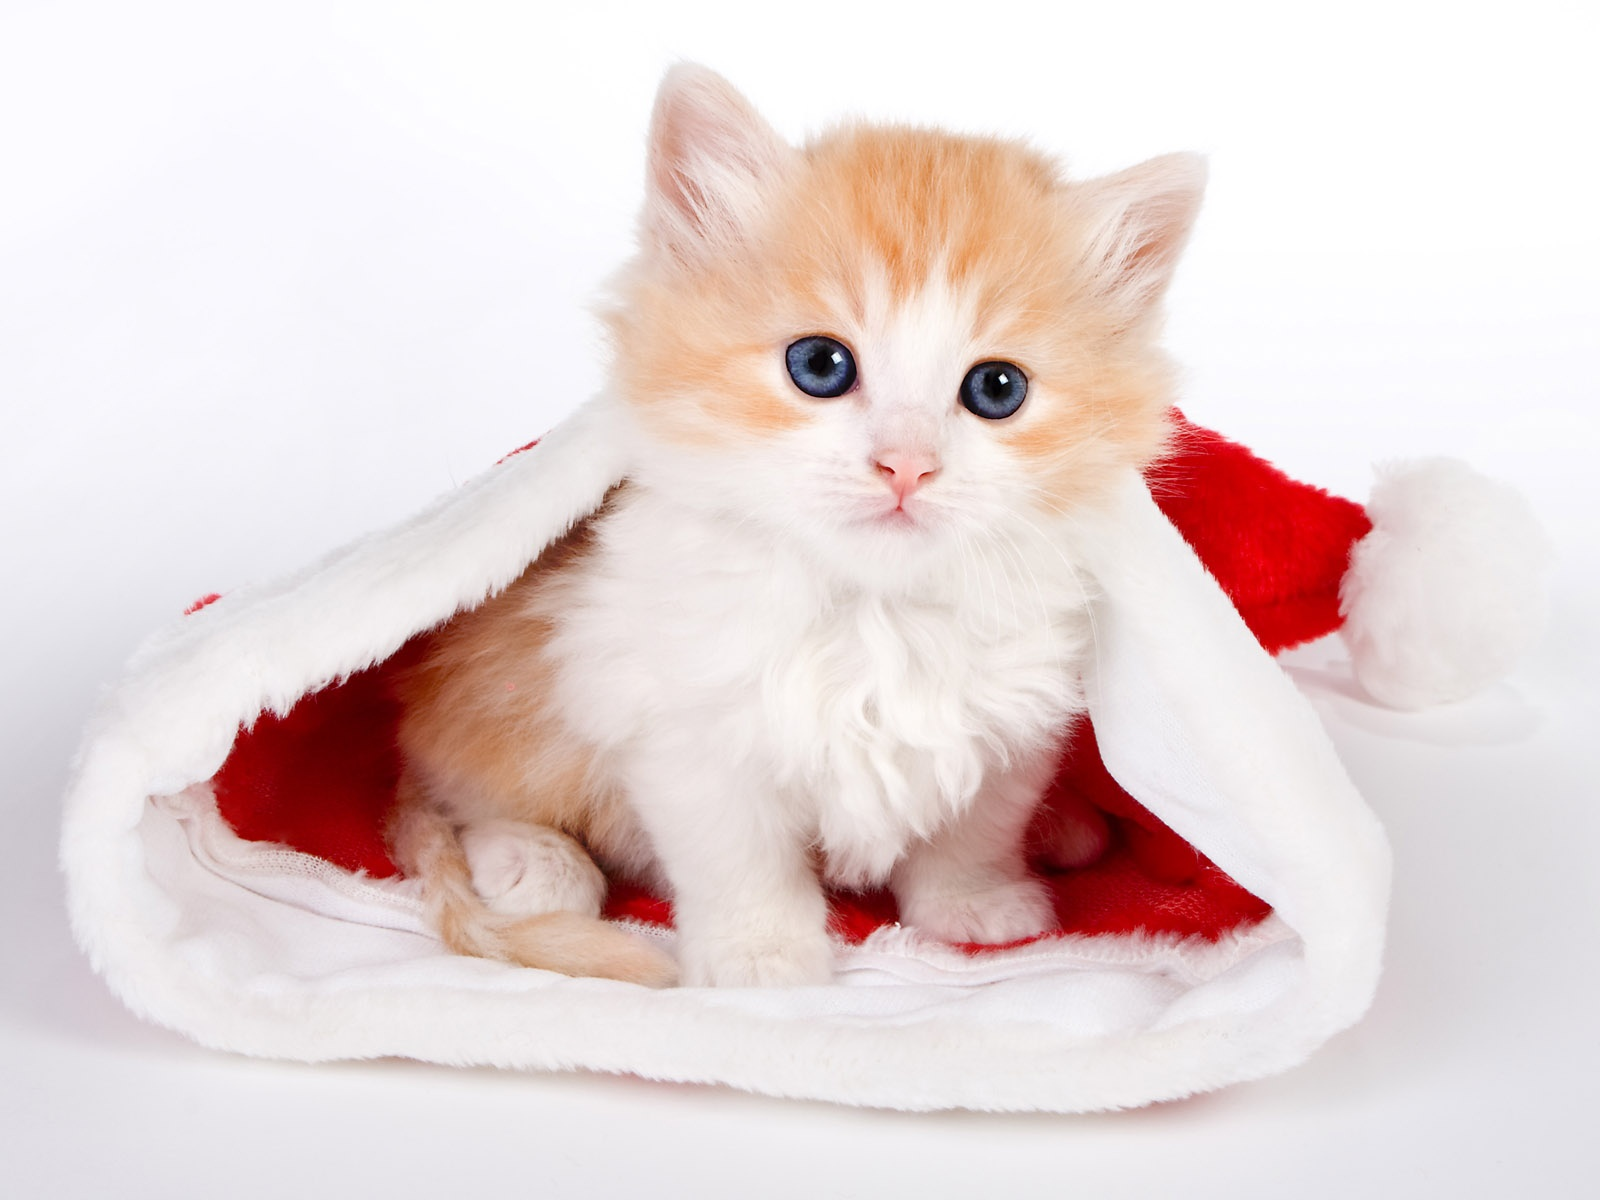 click to free download the wallpaper--Lovely Animals Post, Cute Cat in Santa Hat, White Background, Little Cutie! 1600X1200 free wallpaper download